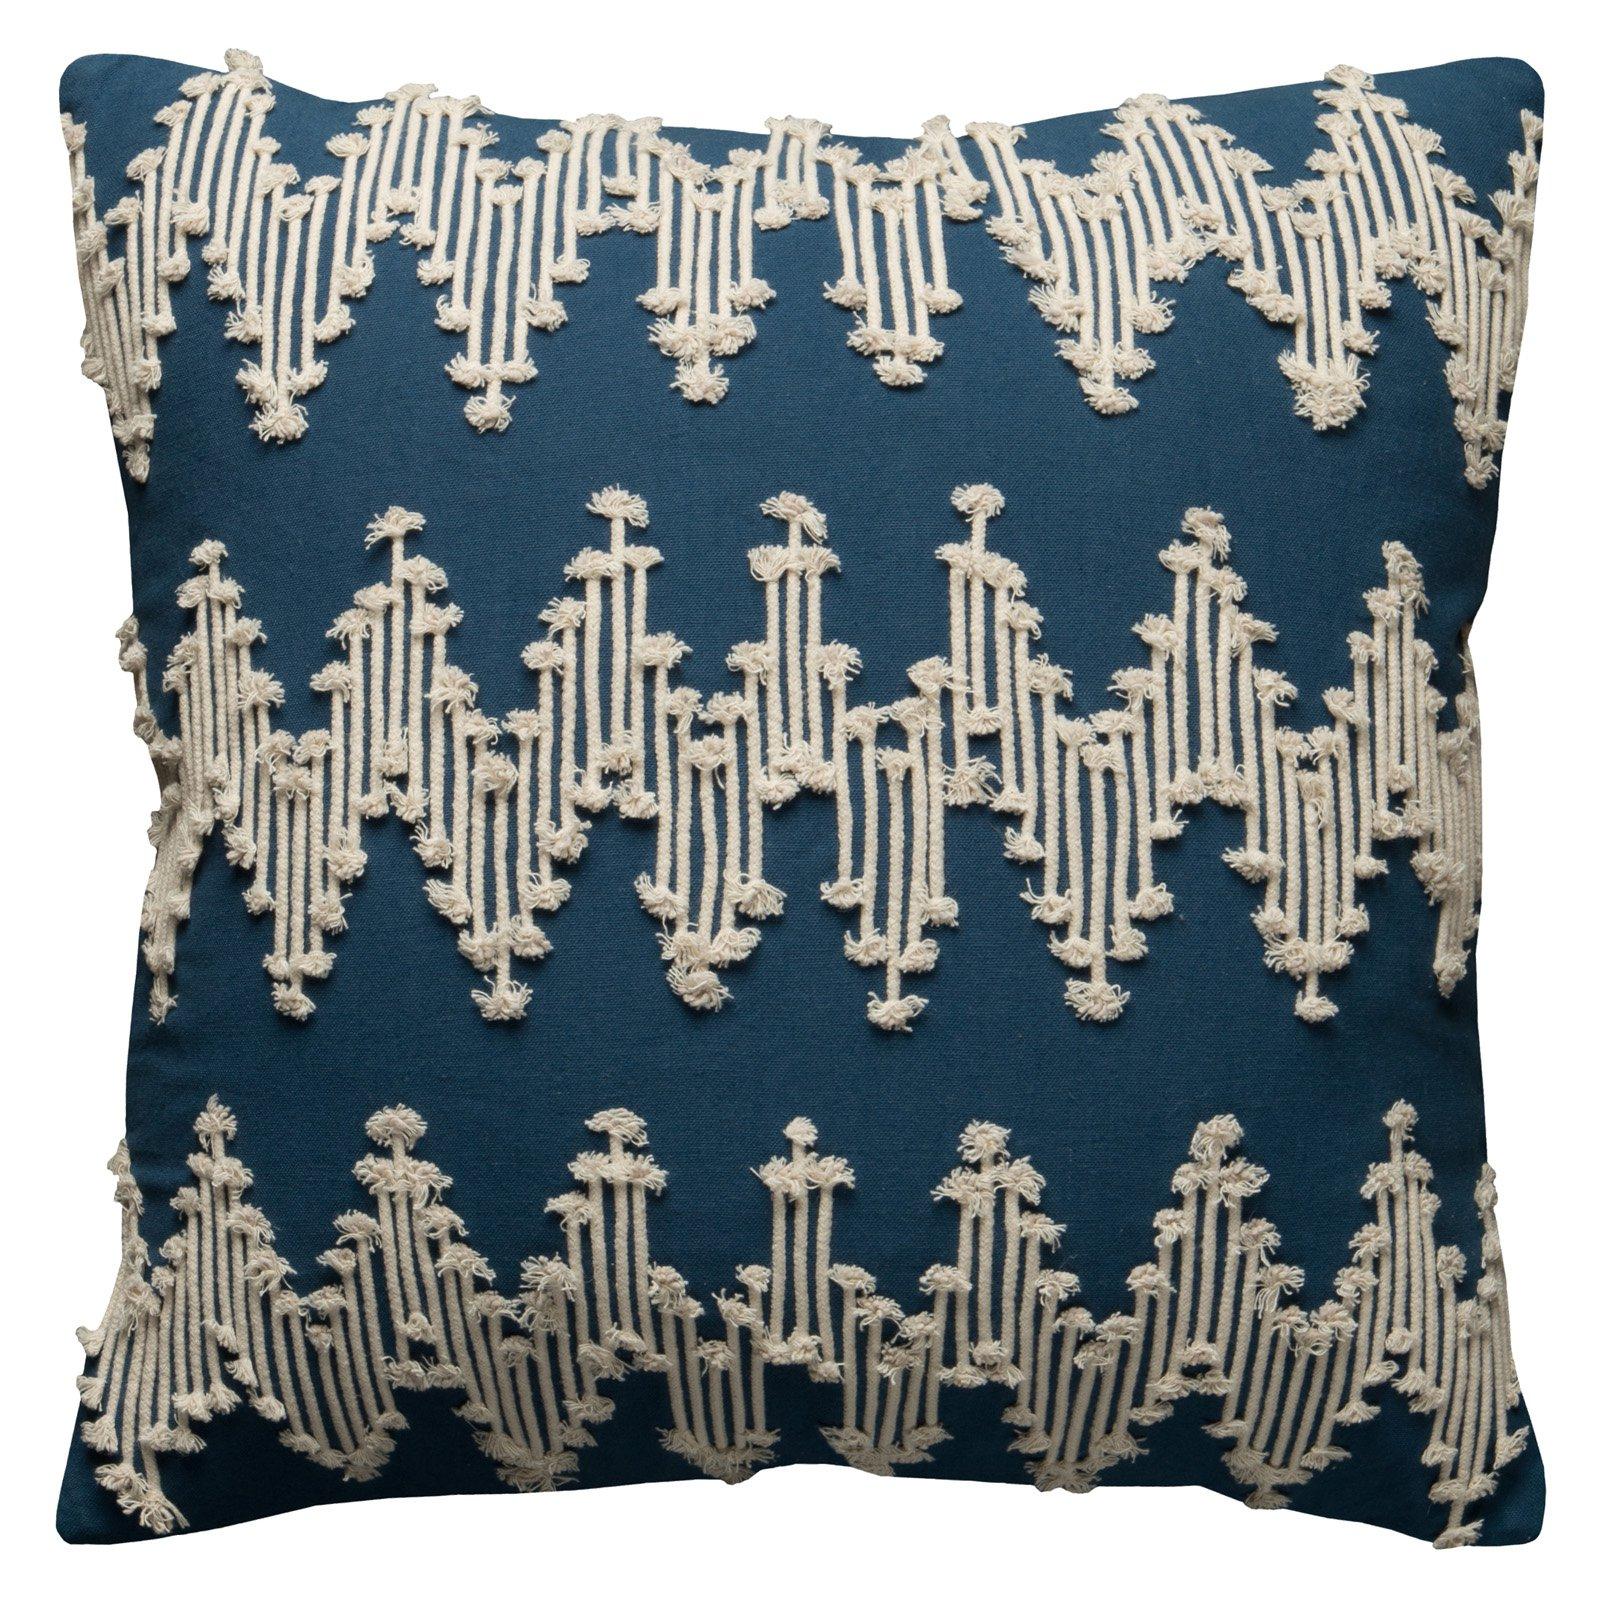 "Rizzy Home Chevron Embellished Decorative Throw Pillow with Zipper Closer, 20"" x 20"""